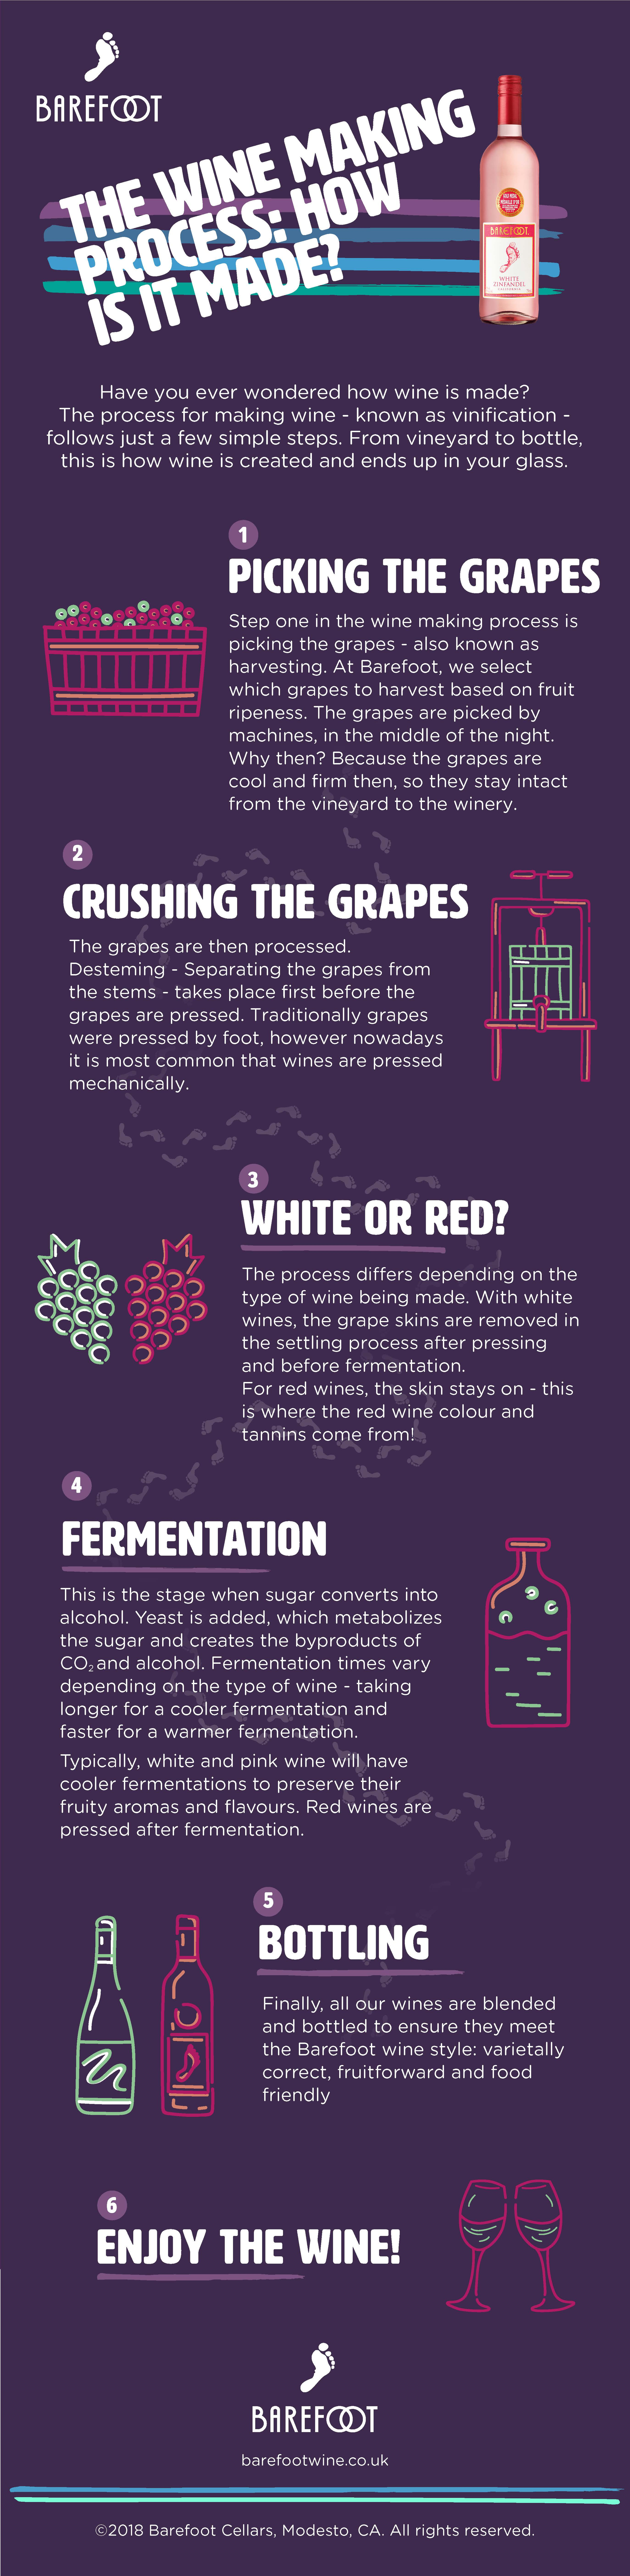 The Wine Making Process: How Is It Made?